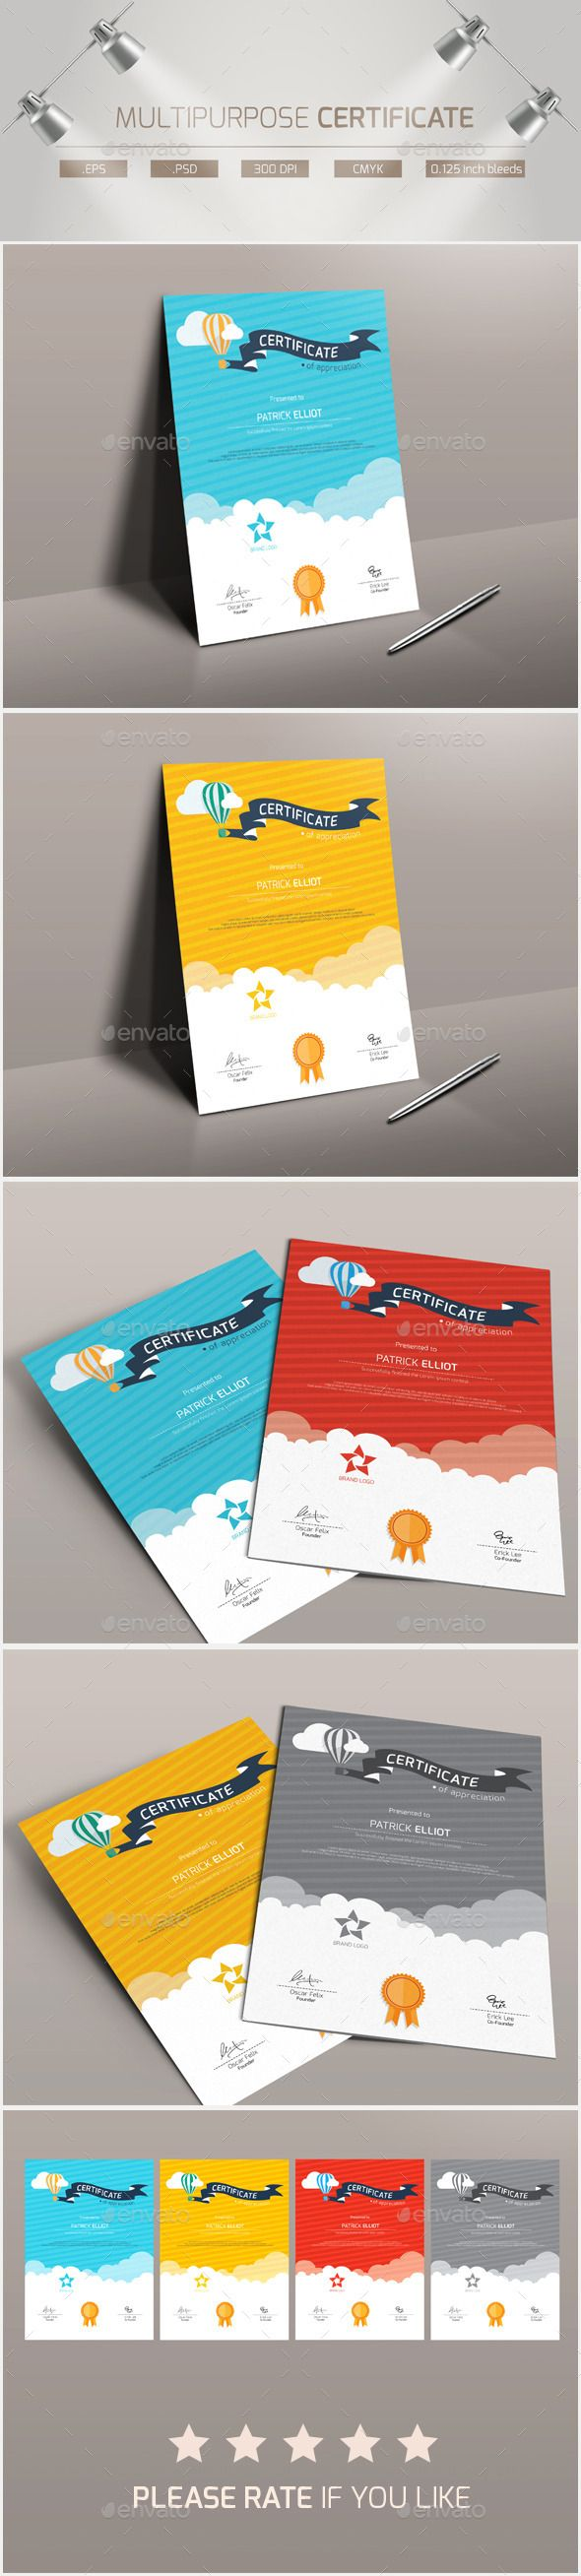 Multipurpose Certificate Template PSD, Vector EPS. Download here: http://graphicriver.net/item/multipurpose-certificate/12200843?ref=ksioks